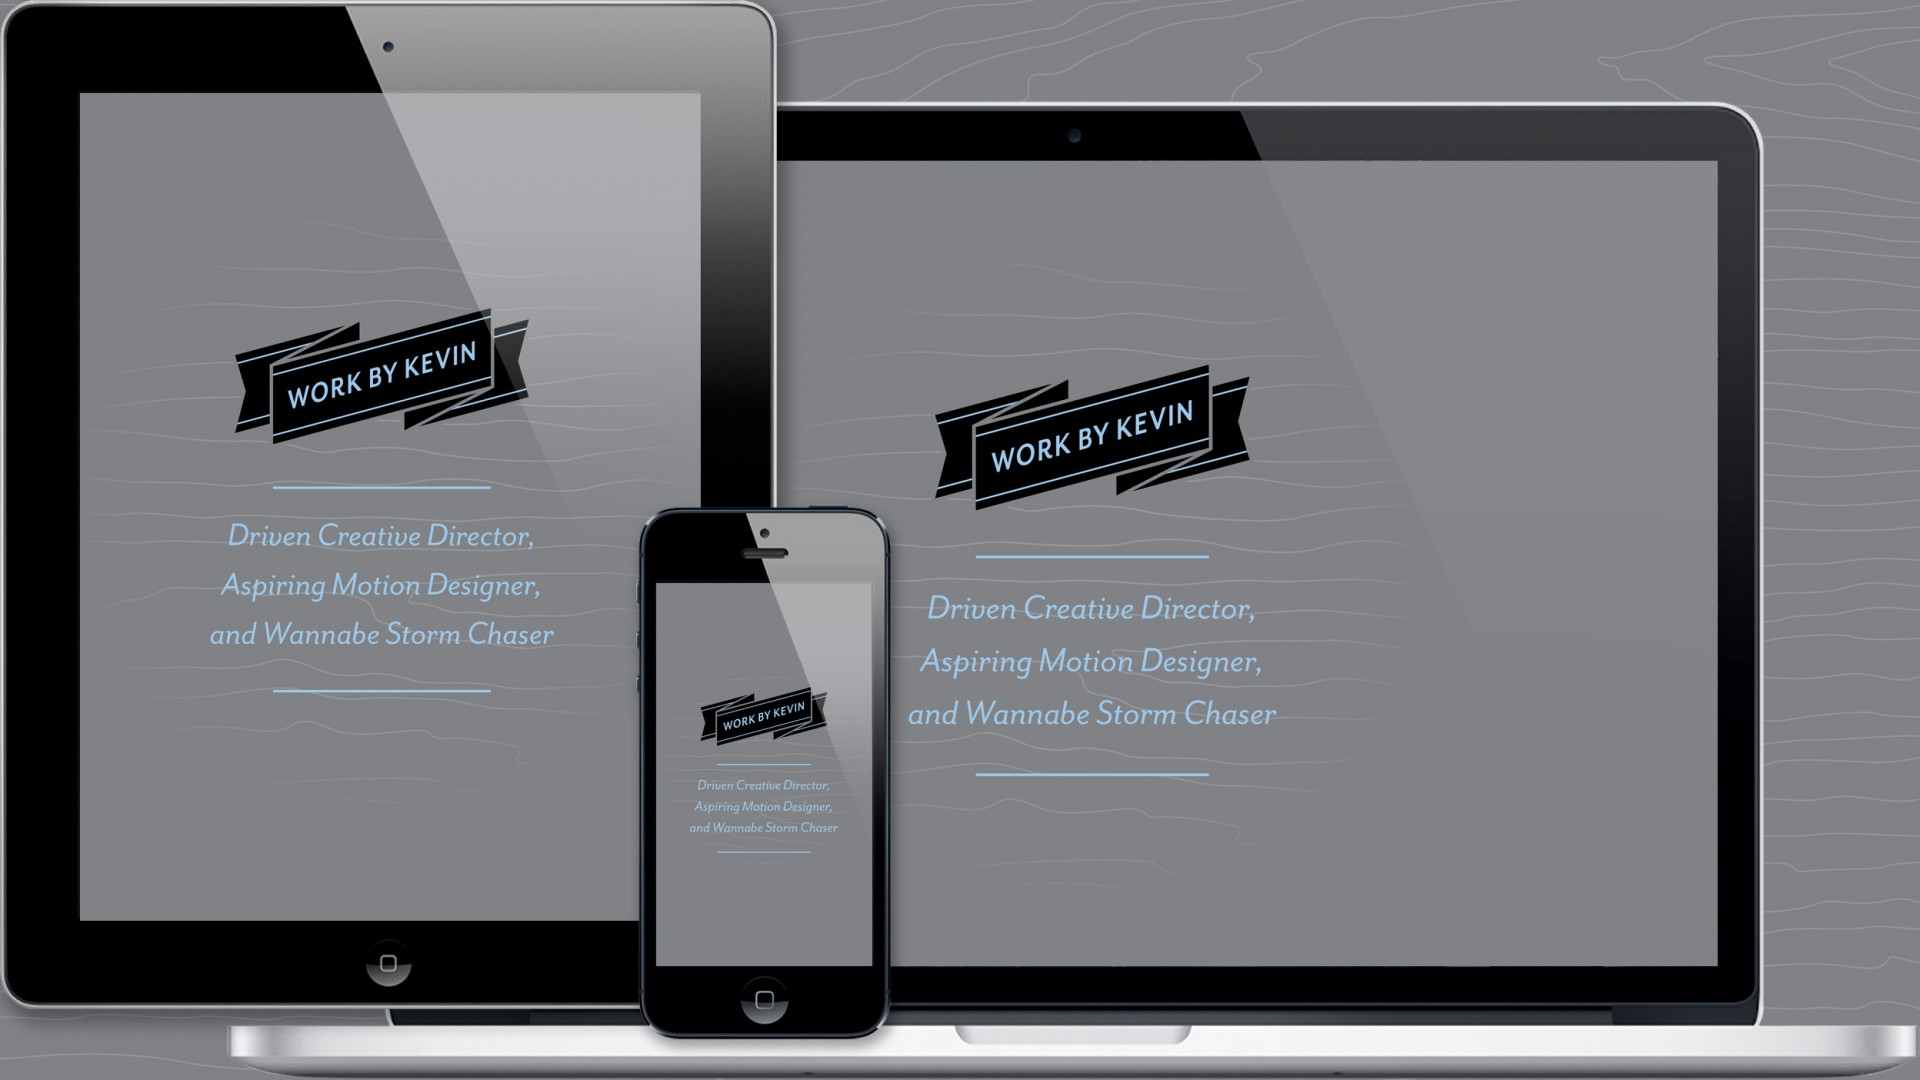 Work By Kevin band evolution responsive website, landing page.